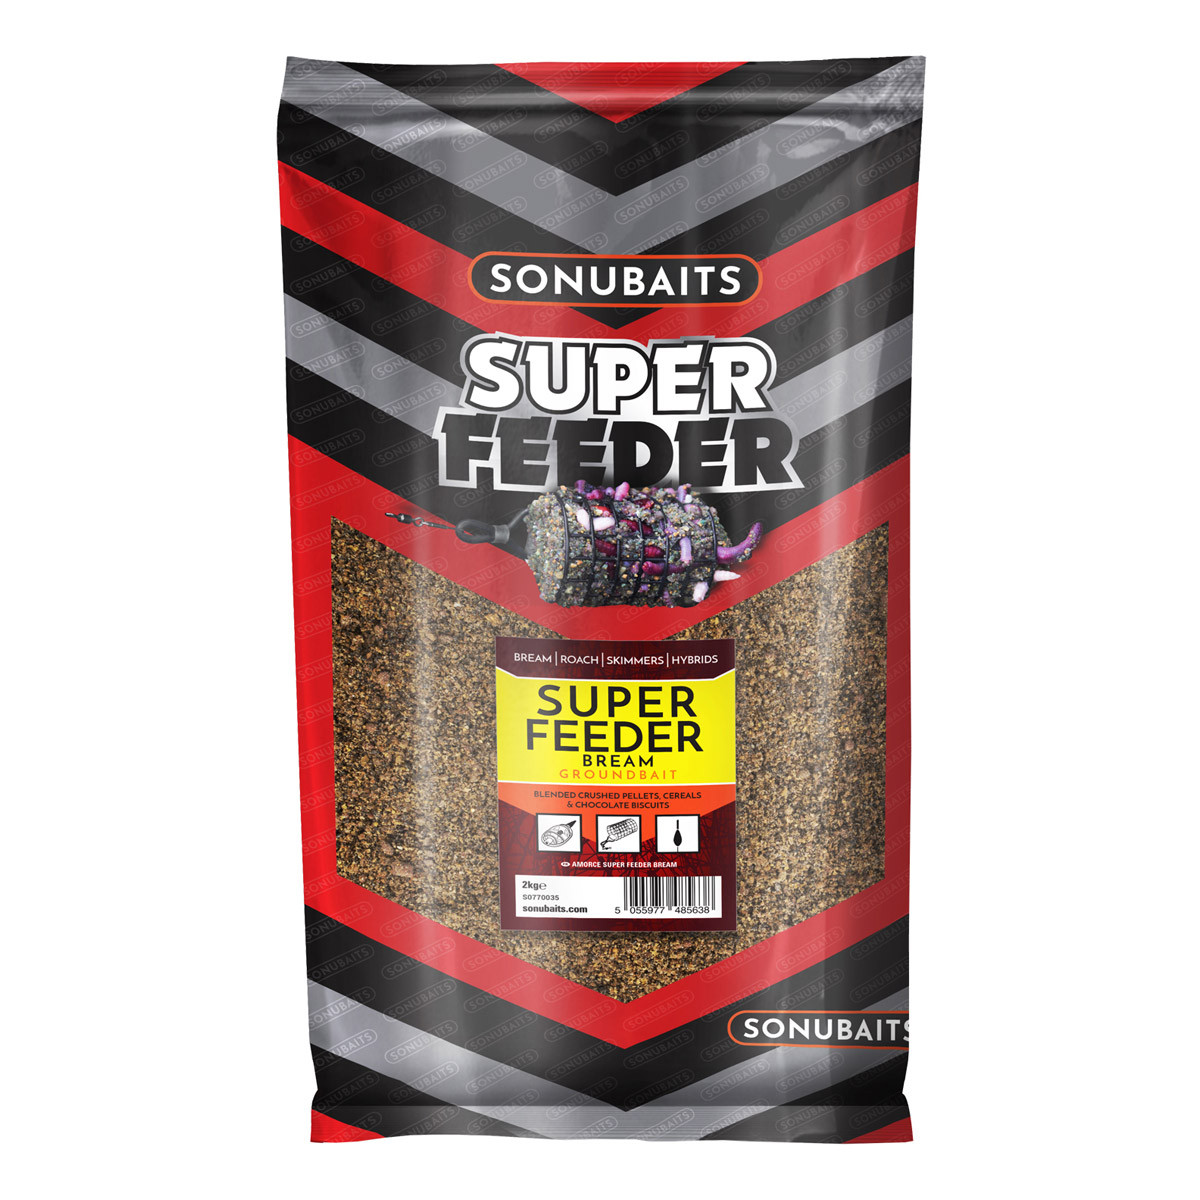 Sonubaits Super Feeder Bream 2 KG